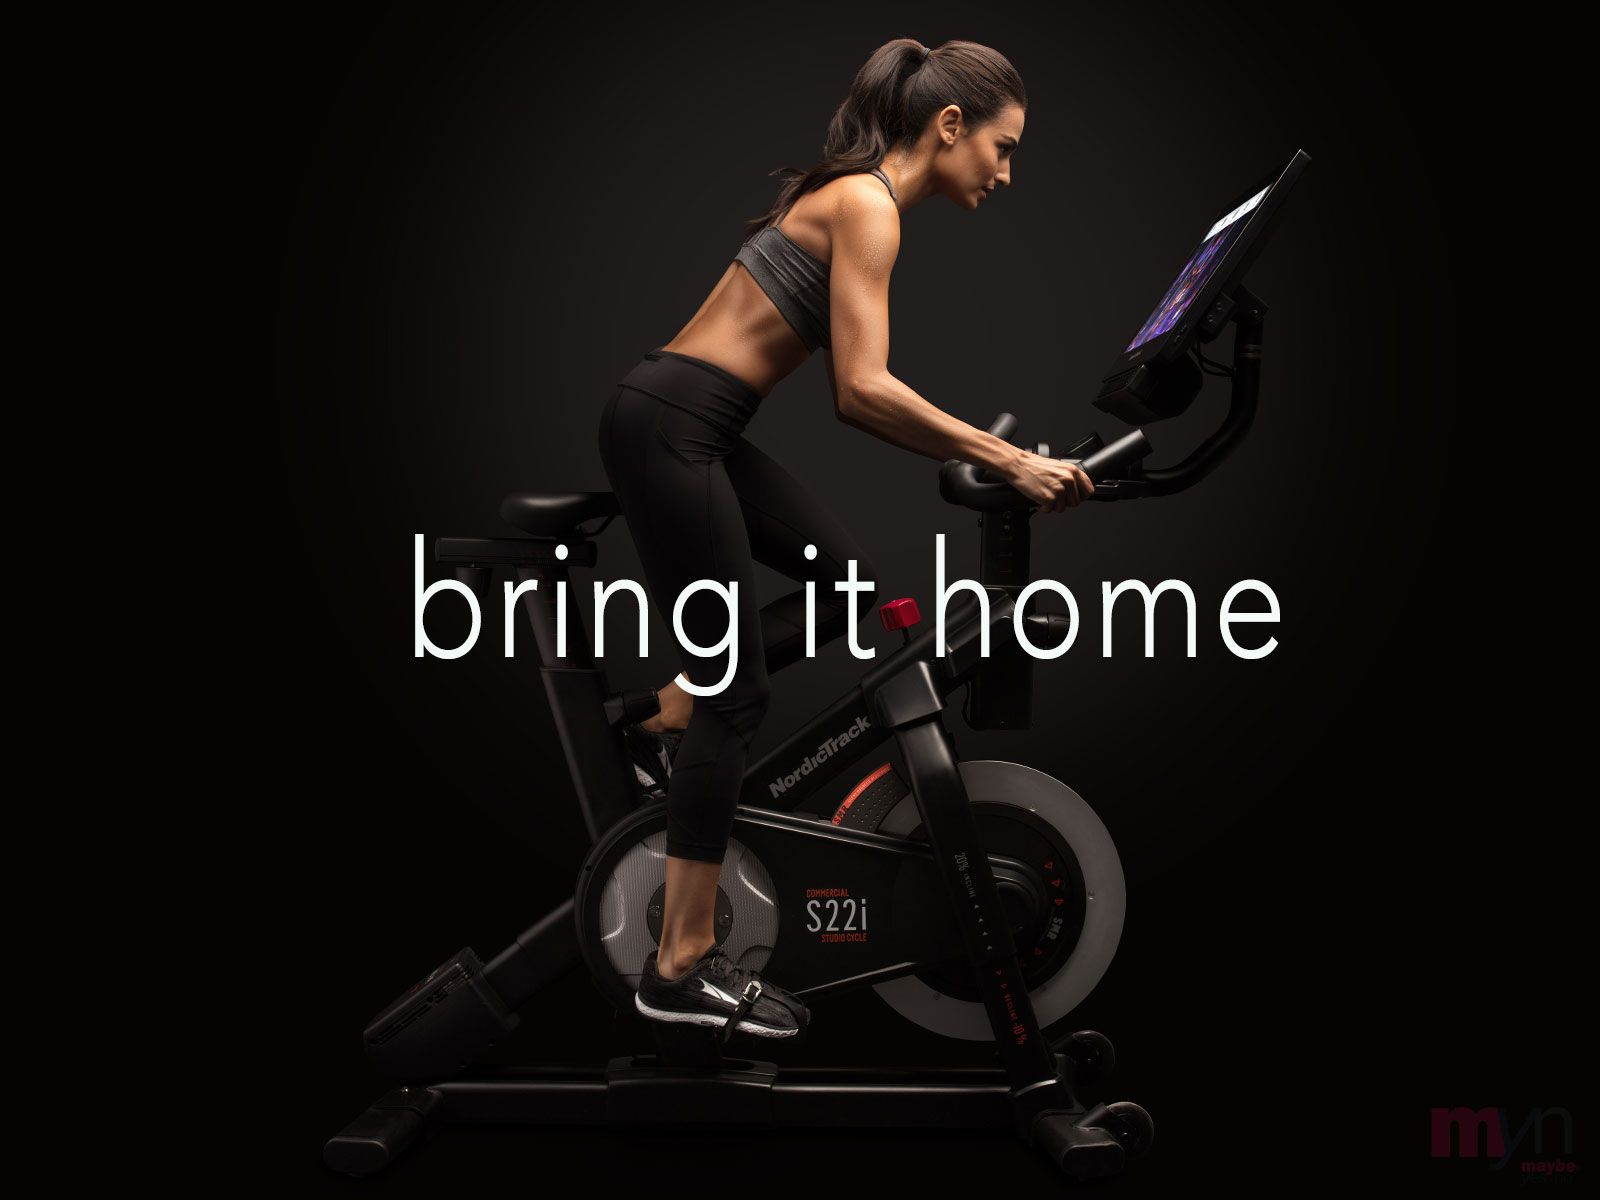 iFit coach — Fitness Reviews on Treadmills, Exercise Bikes, Rowing